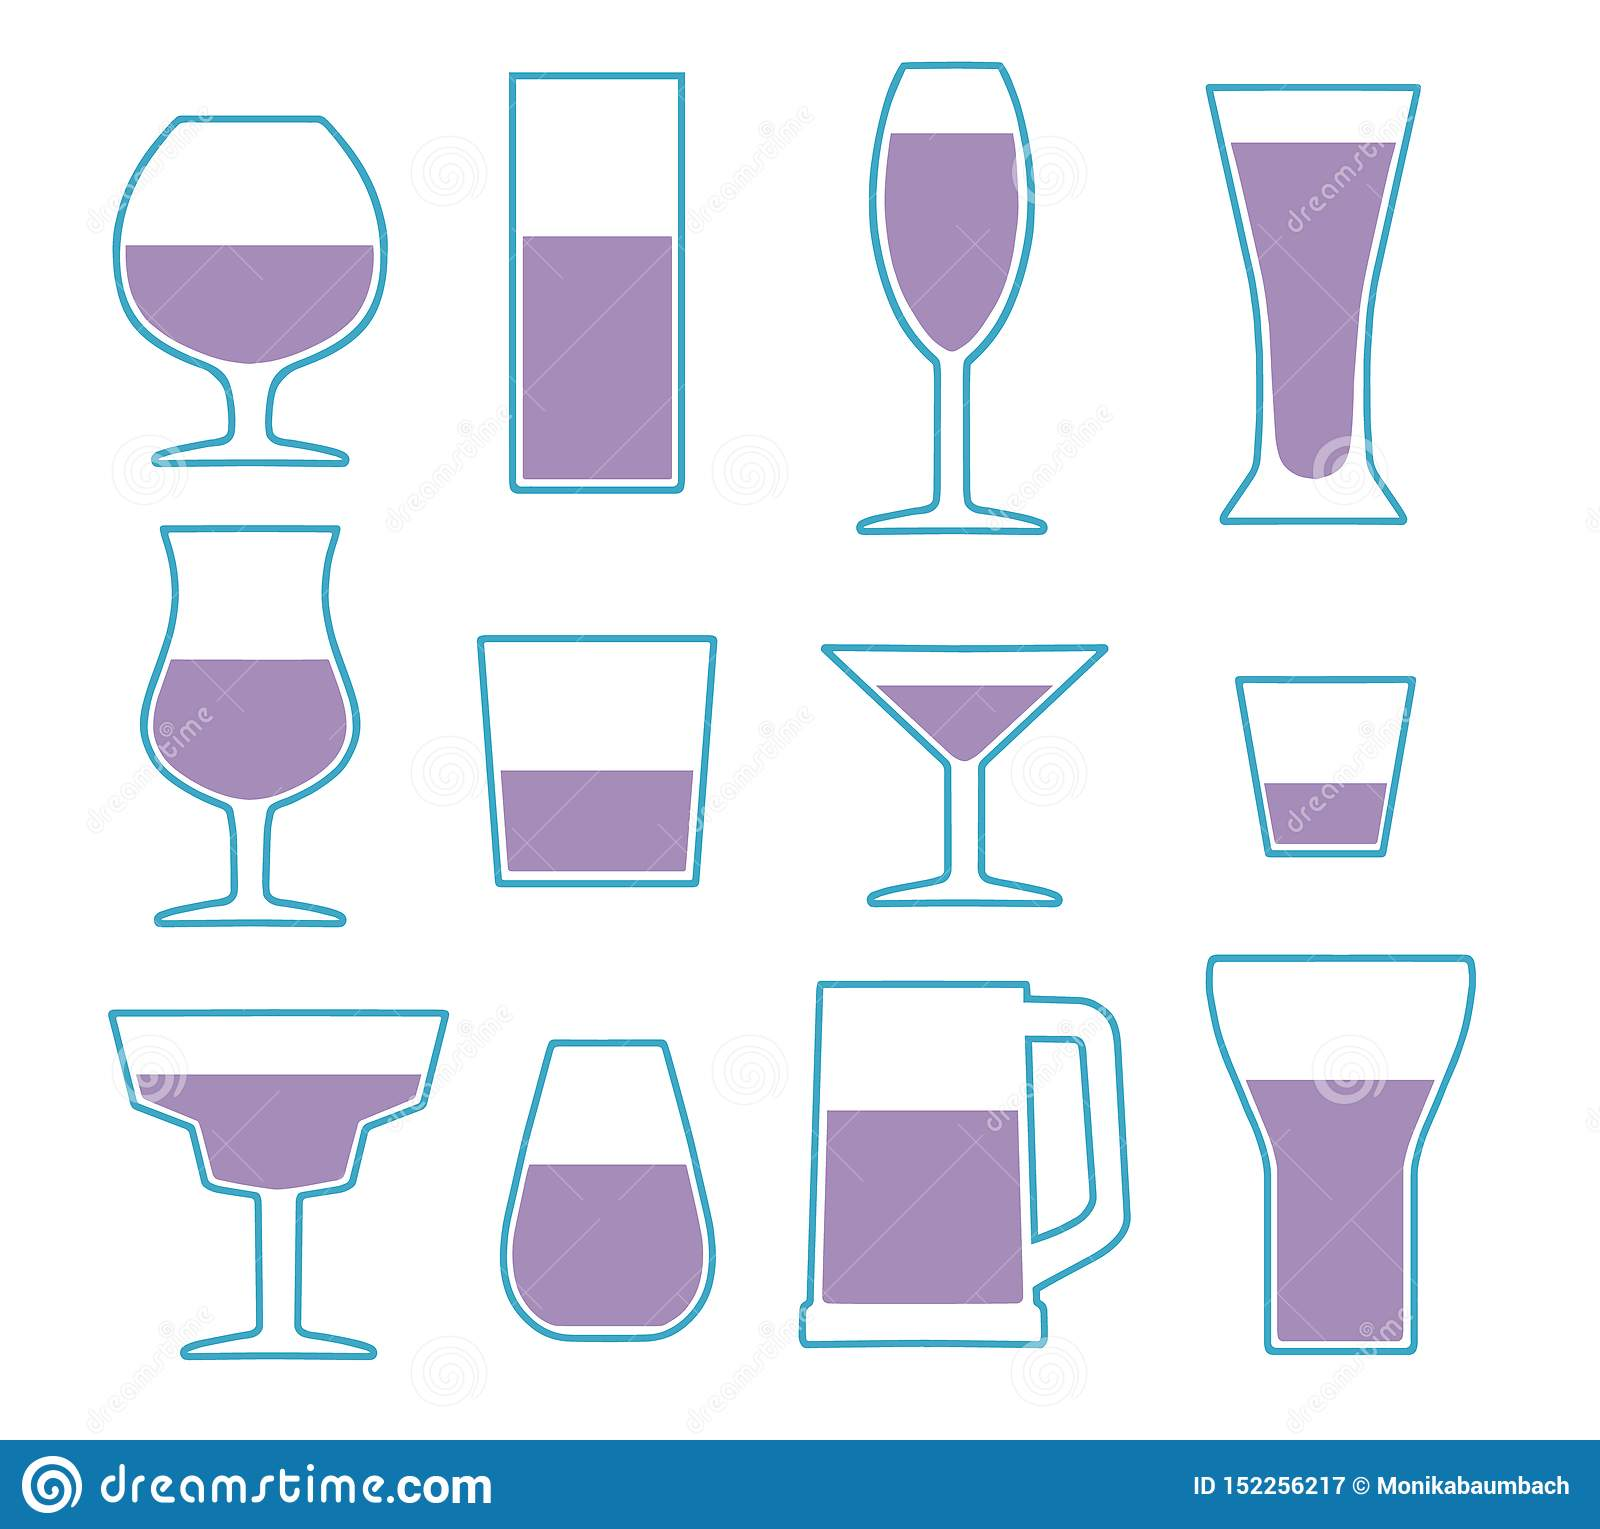 Vector icon collection set with different simple drinking glass types